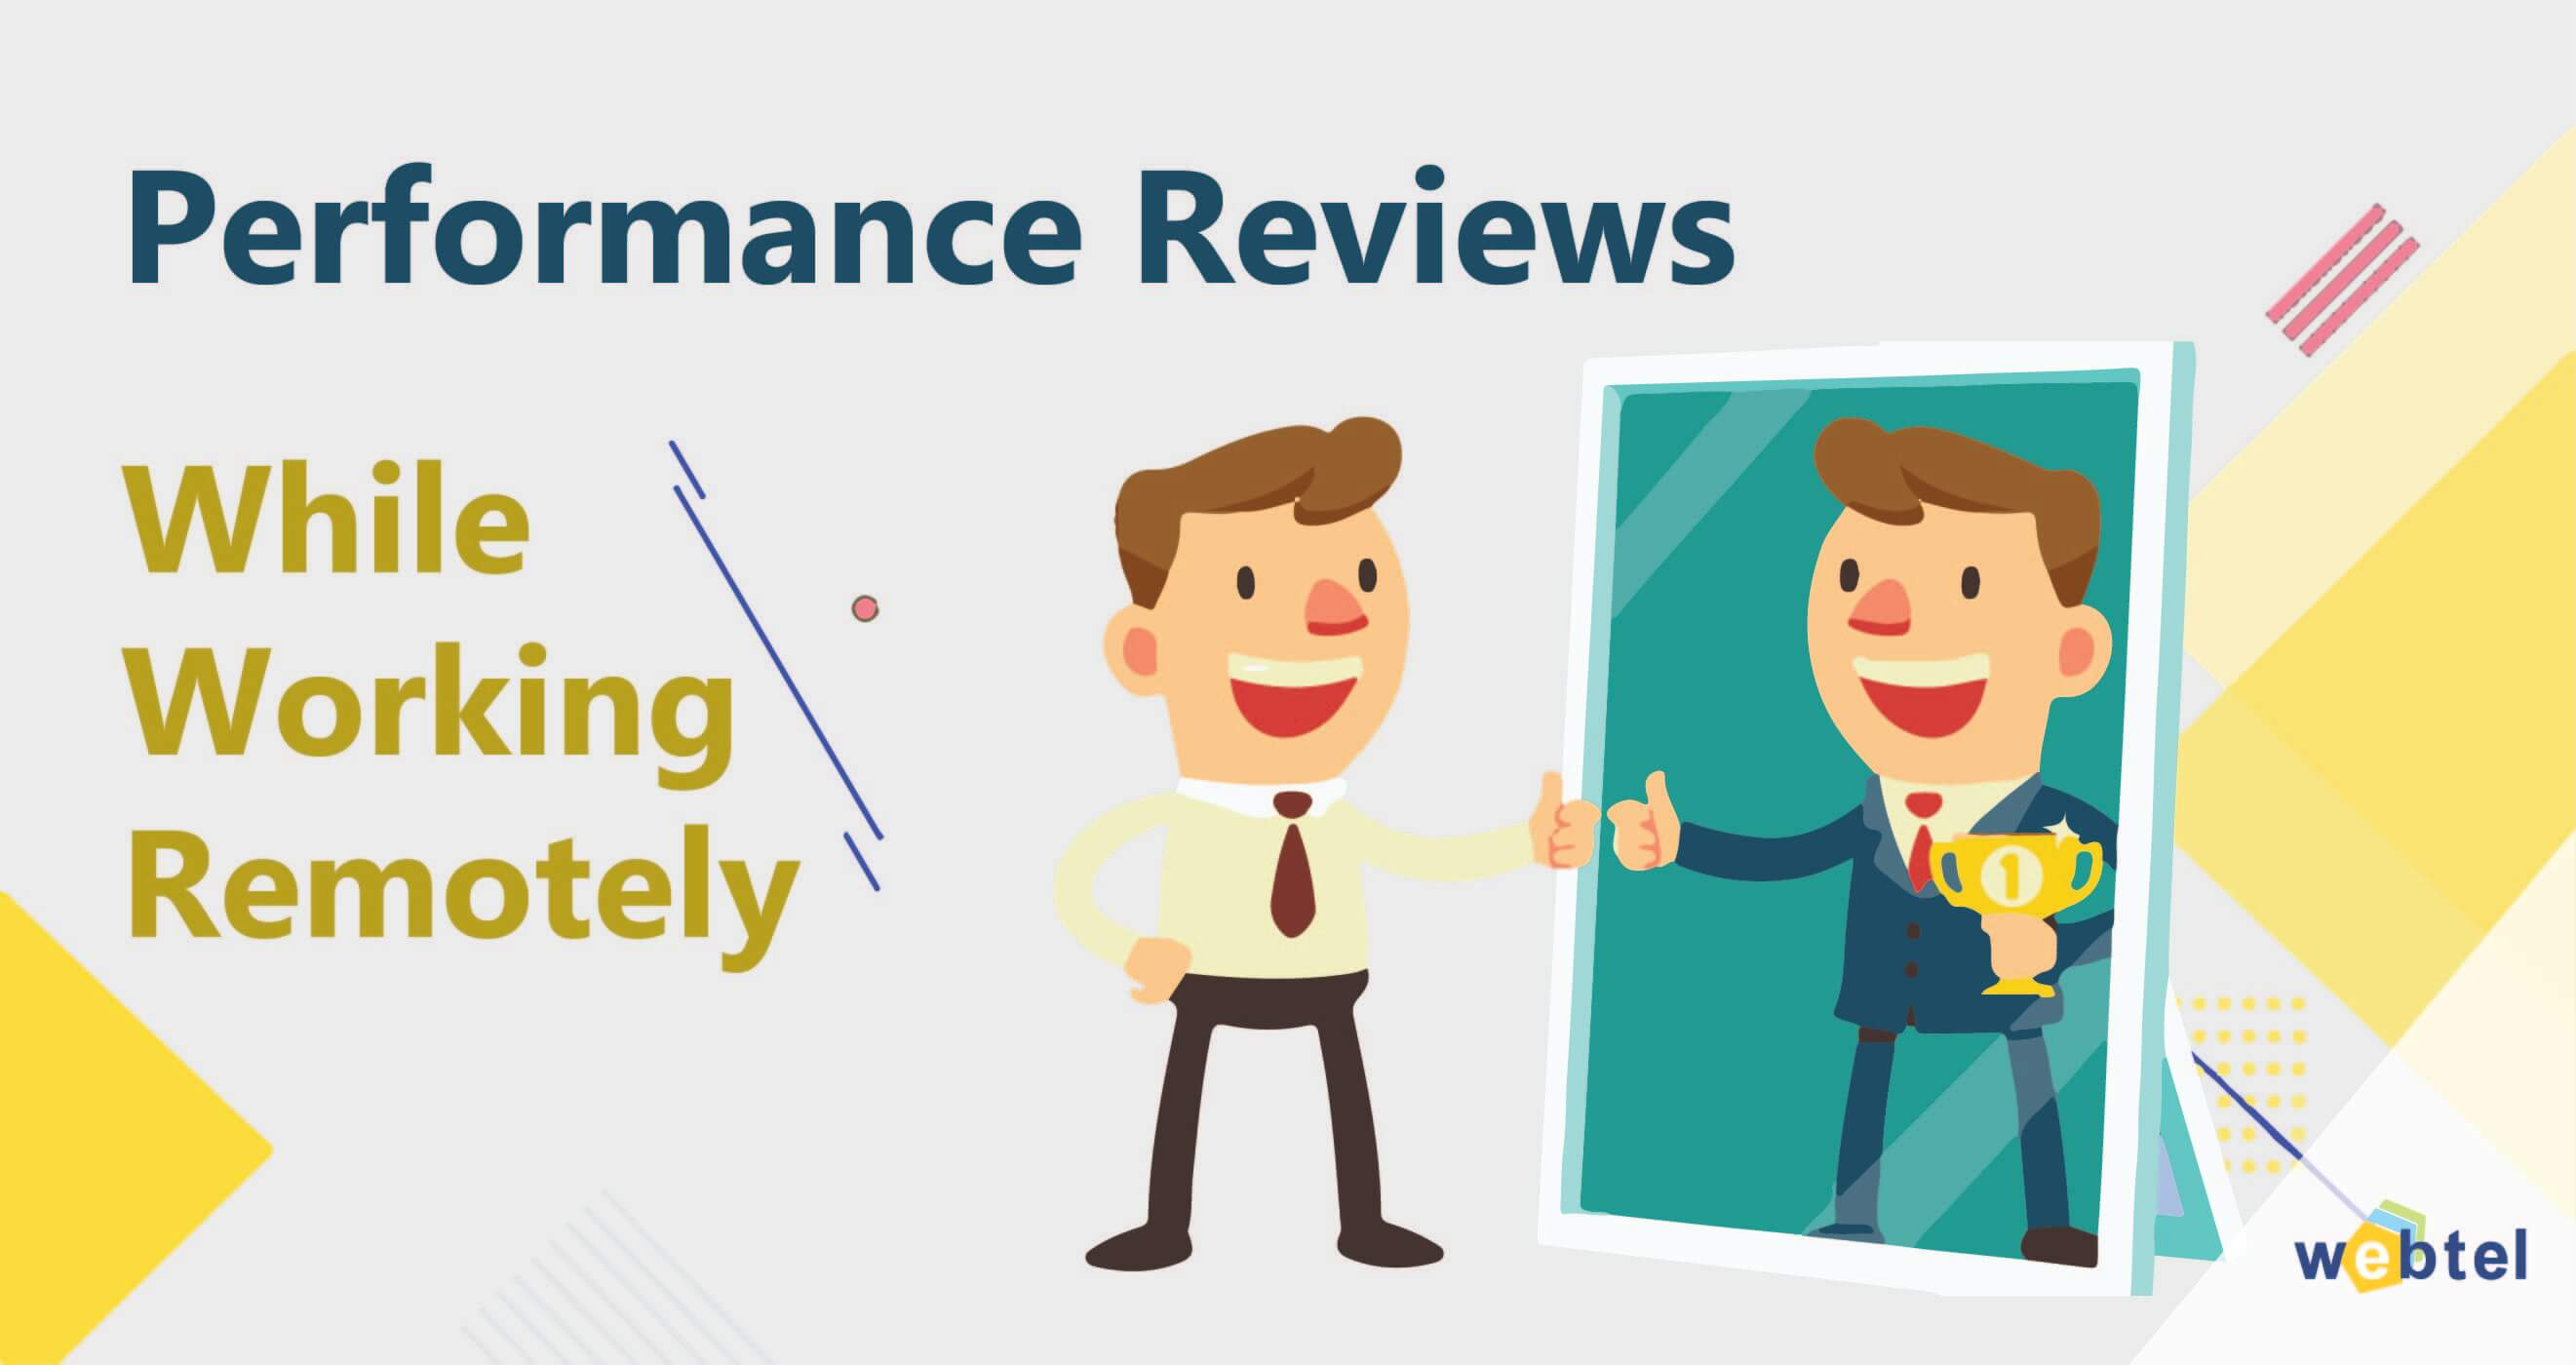 How to Deal with Performance Review While Working Remotely